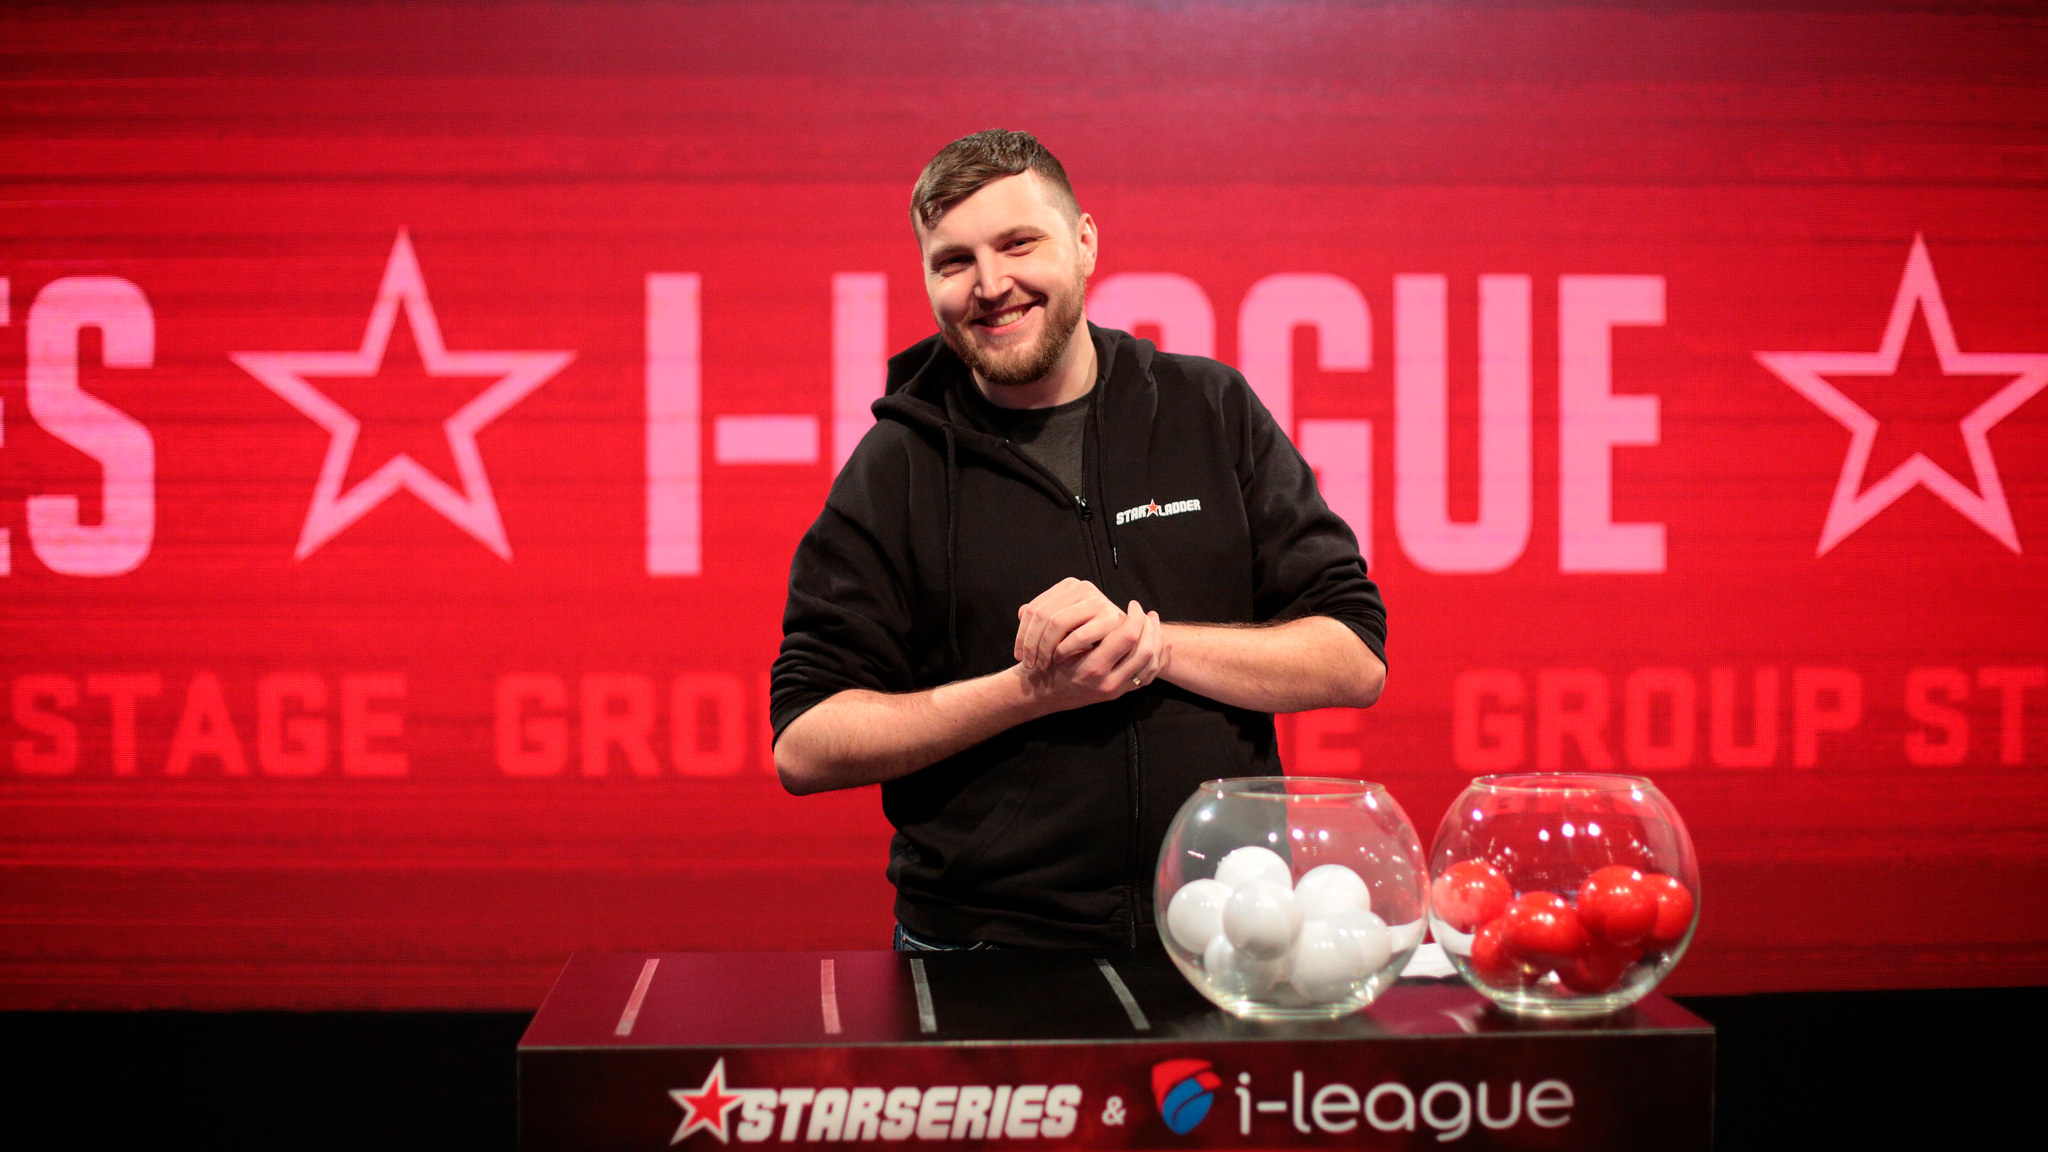 StarSeries CS:GO: Group stage first round draw revealed